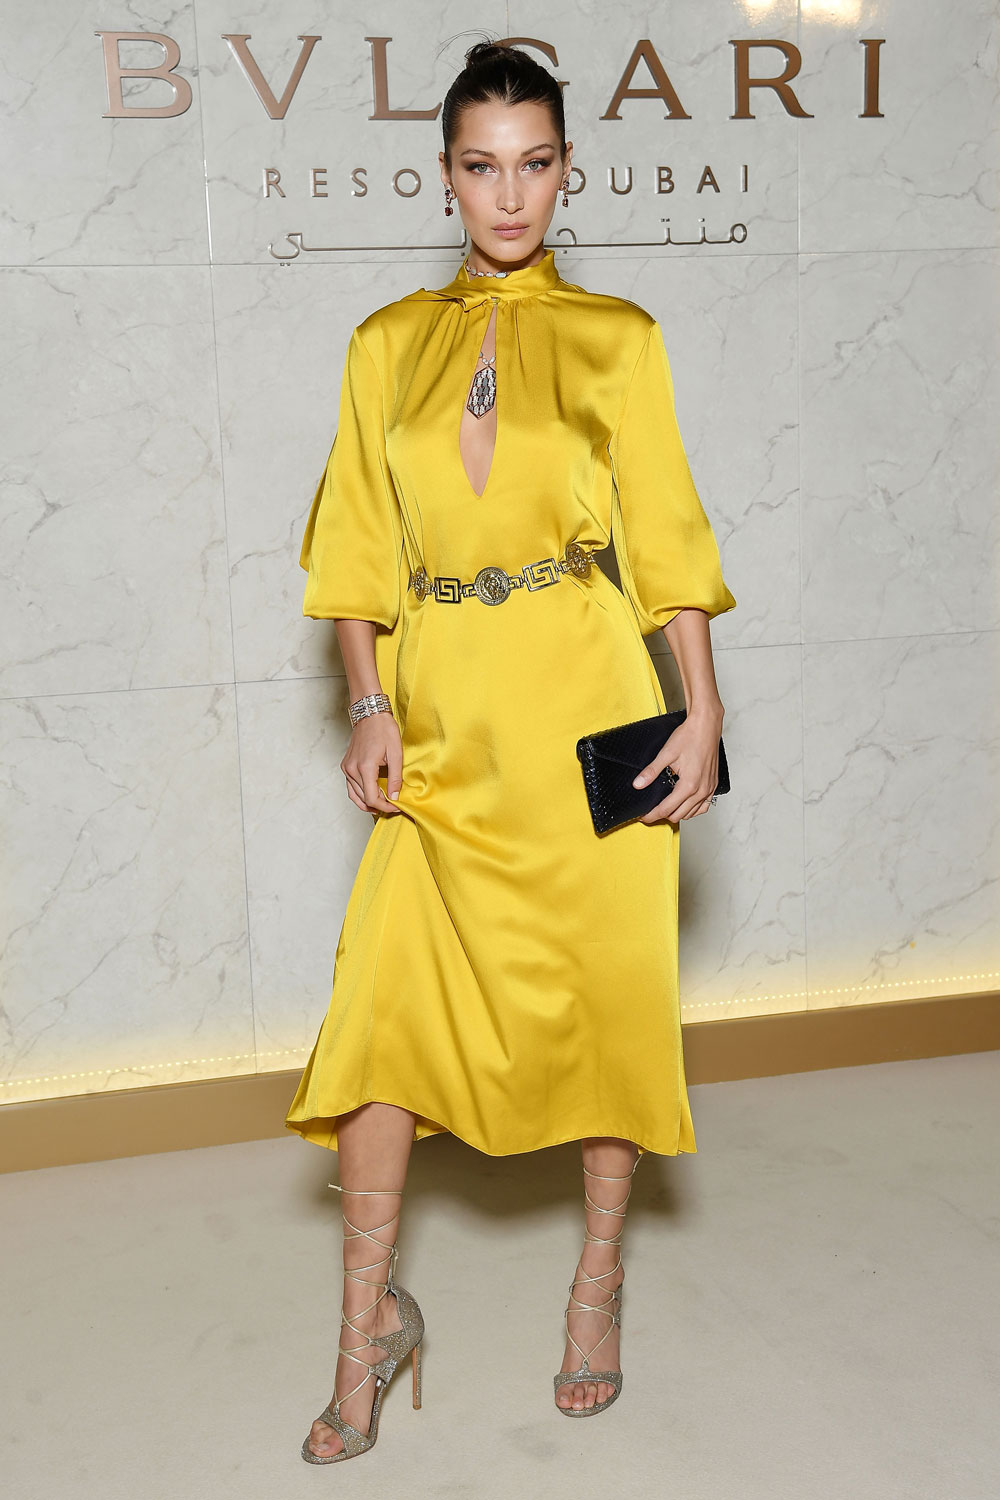 yellow-dress-peasant-silk-belt-gray-shoe-sandalh-gladiators-necklace-midi-bellahadid-spring-summer-dinner.jpg